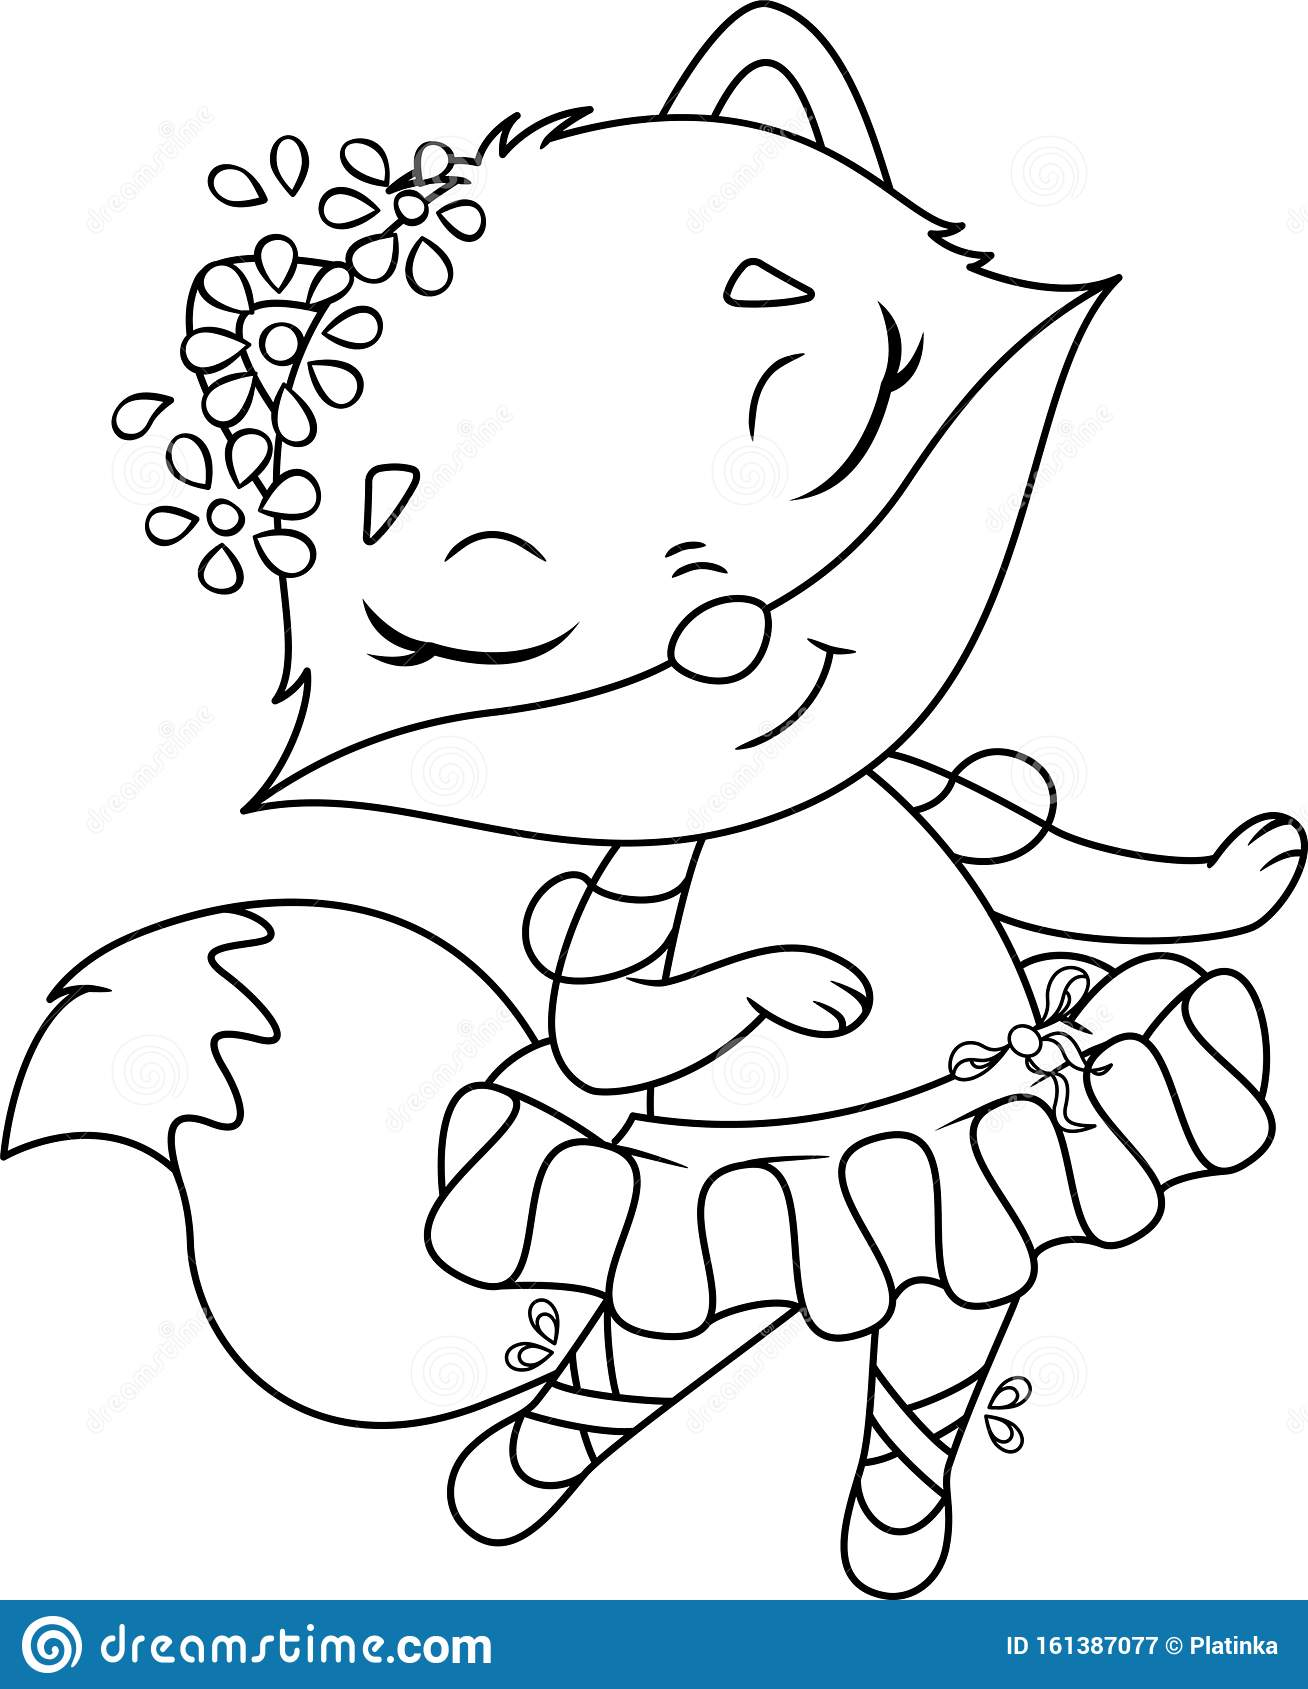 Barbie Ballerina Coloring Pages - Coloring Home | 1689x1308